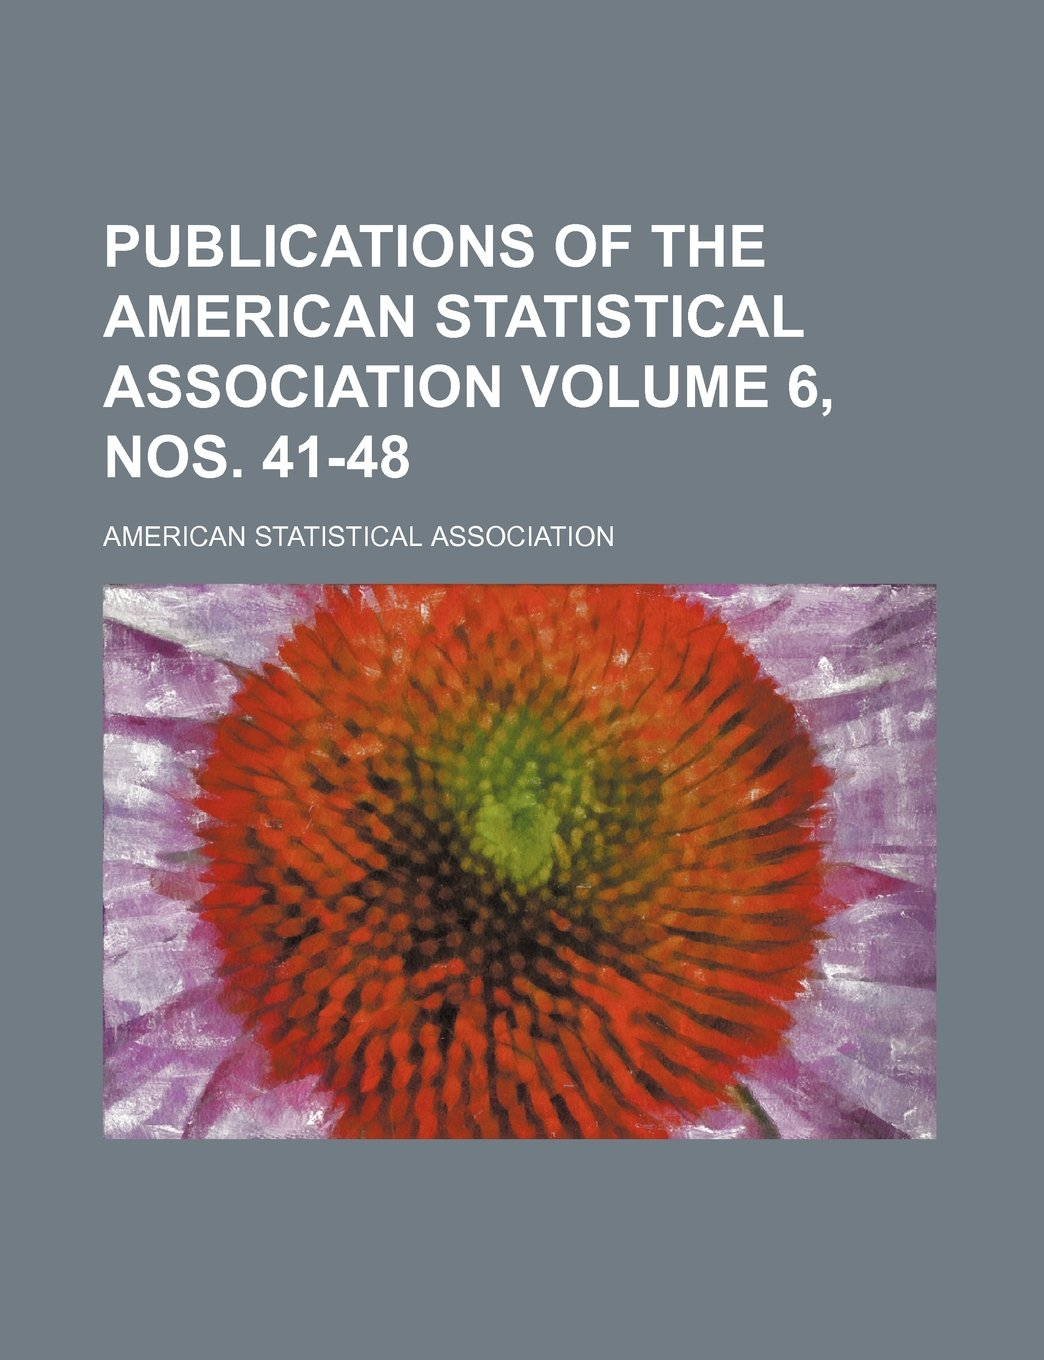 Download Publications of the American Statistical Association Volume 6, nos. 41-48 PDF